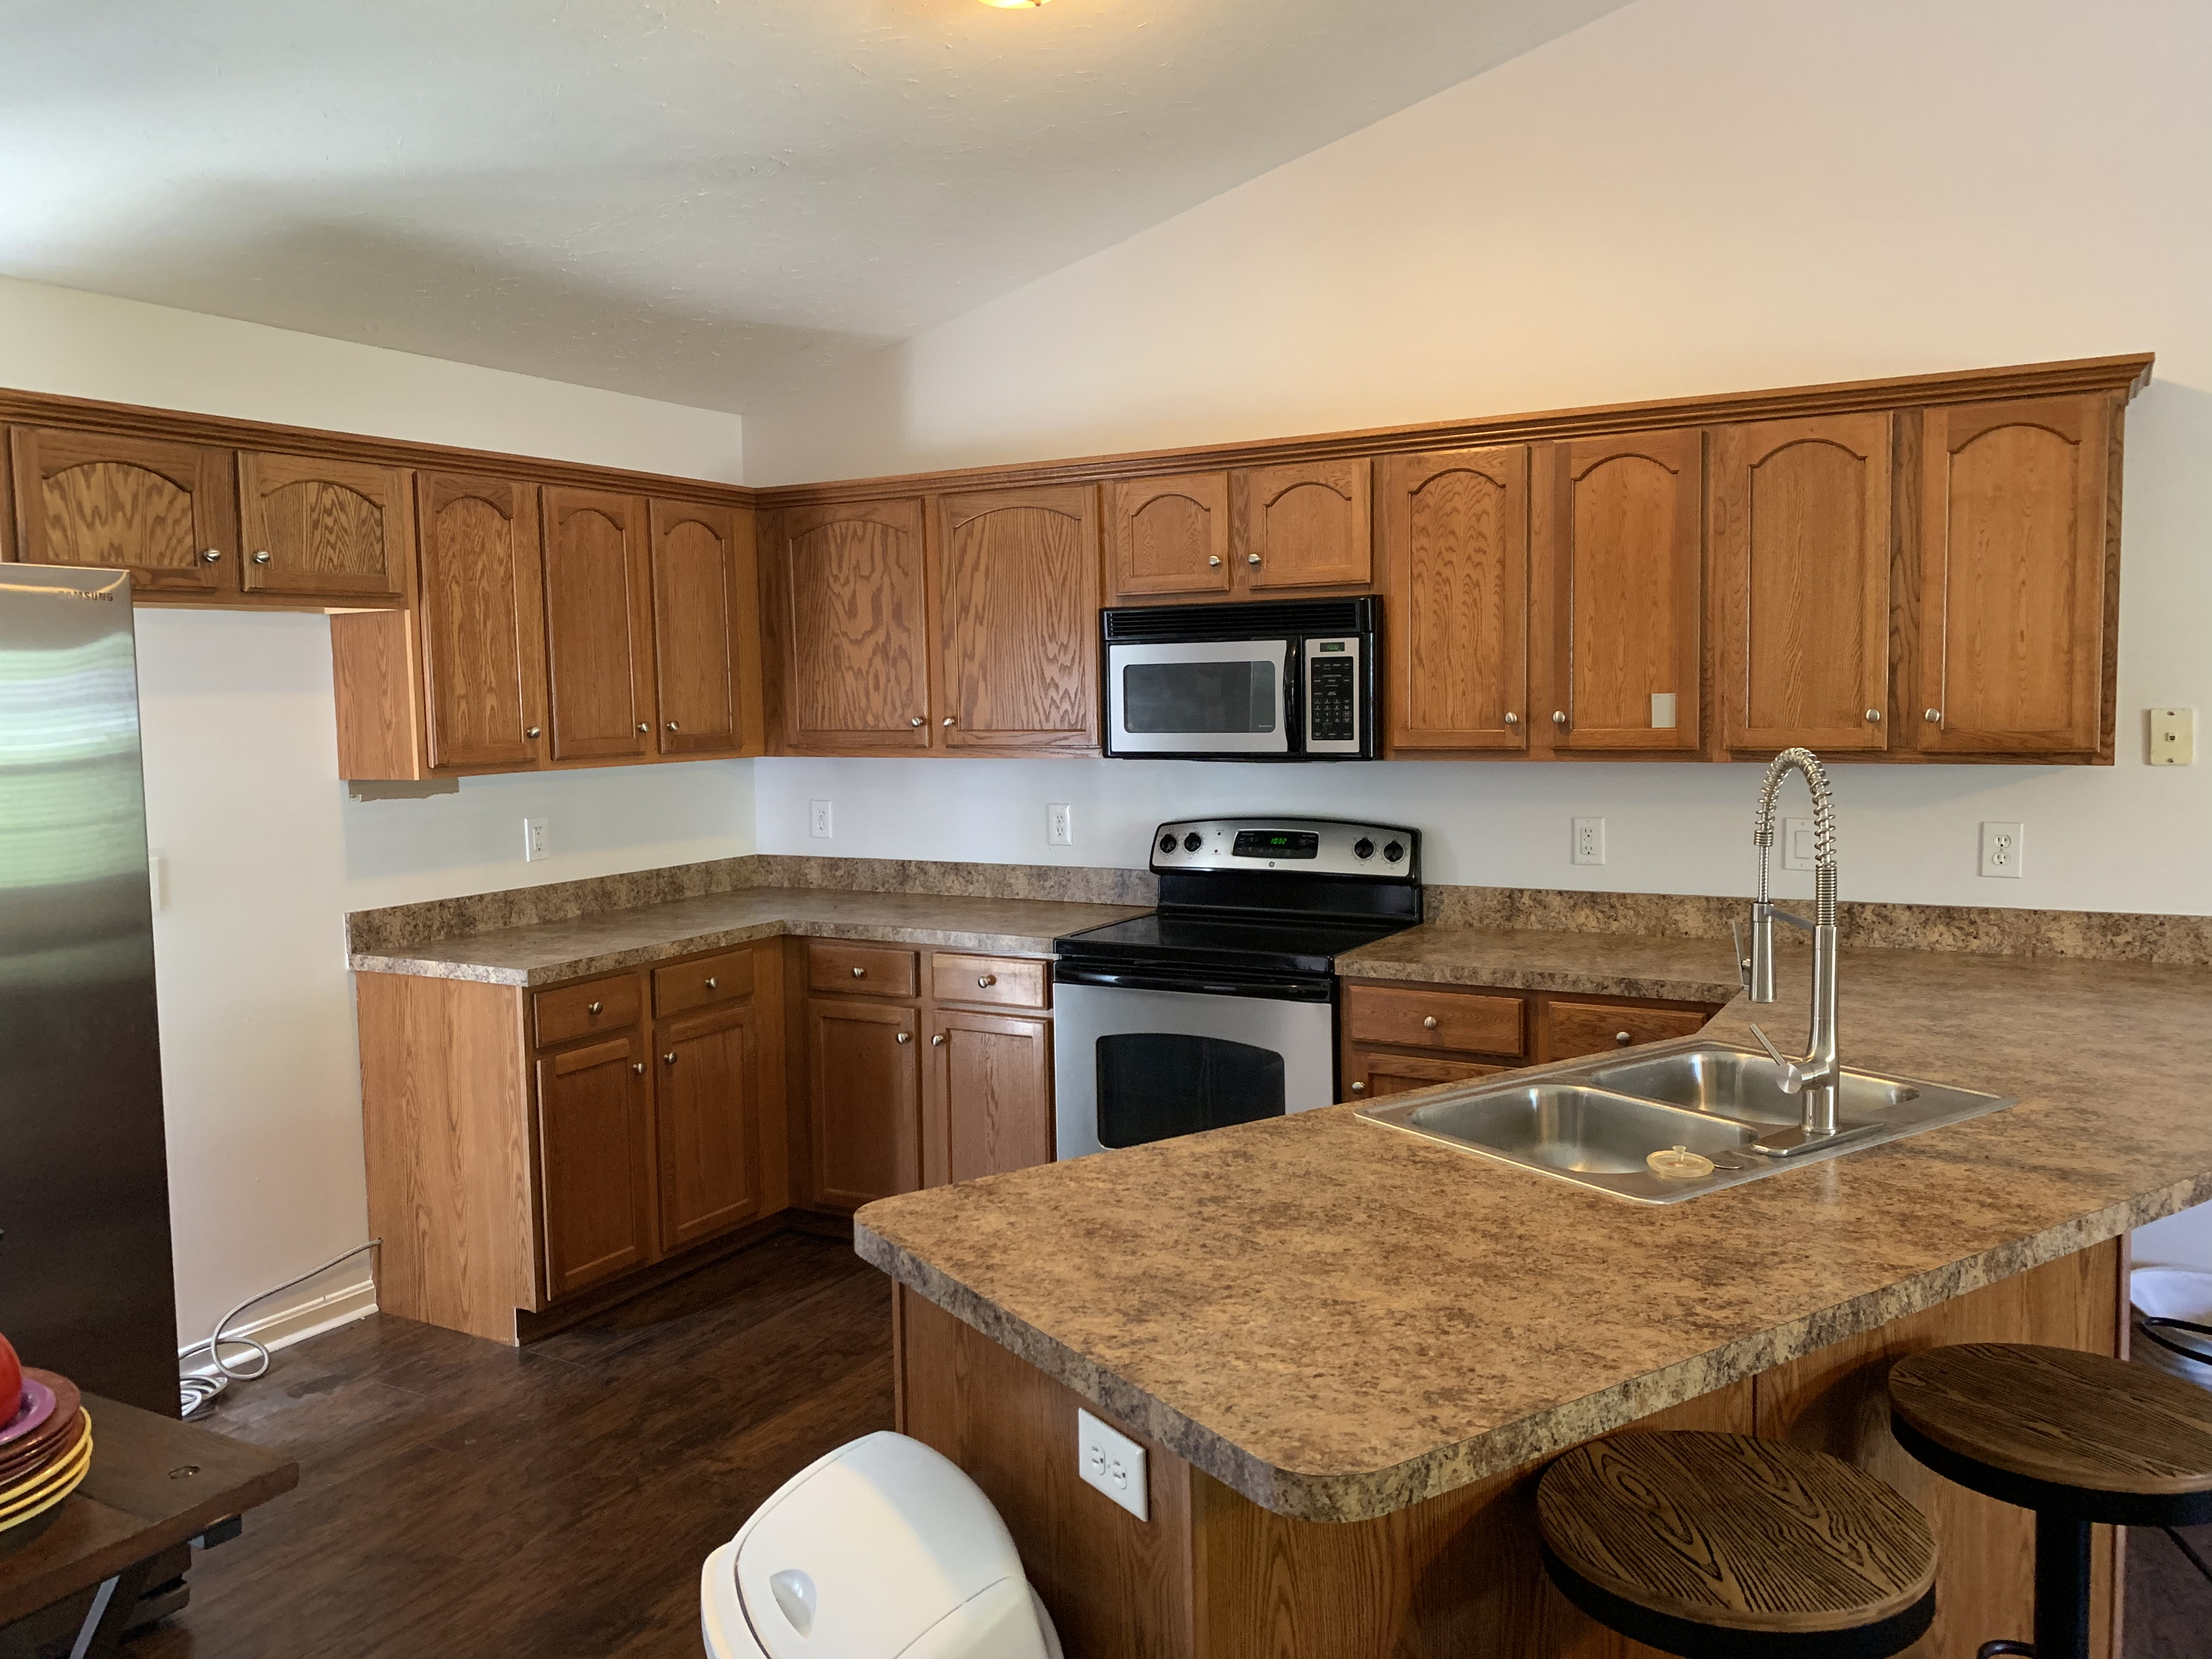 Gallery Kitchen Improvement Remodeling